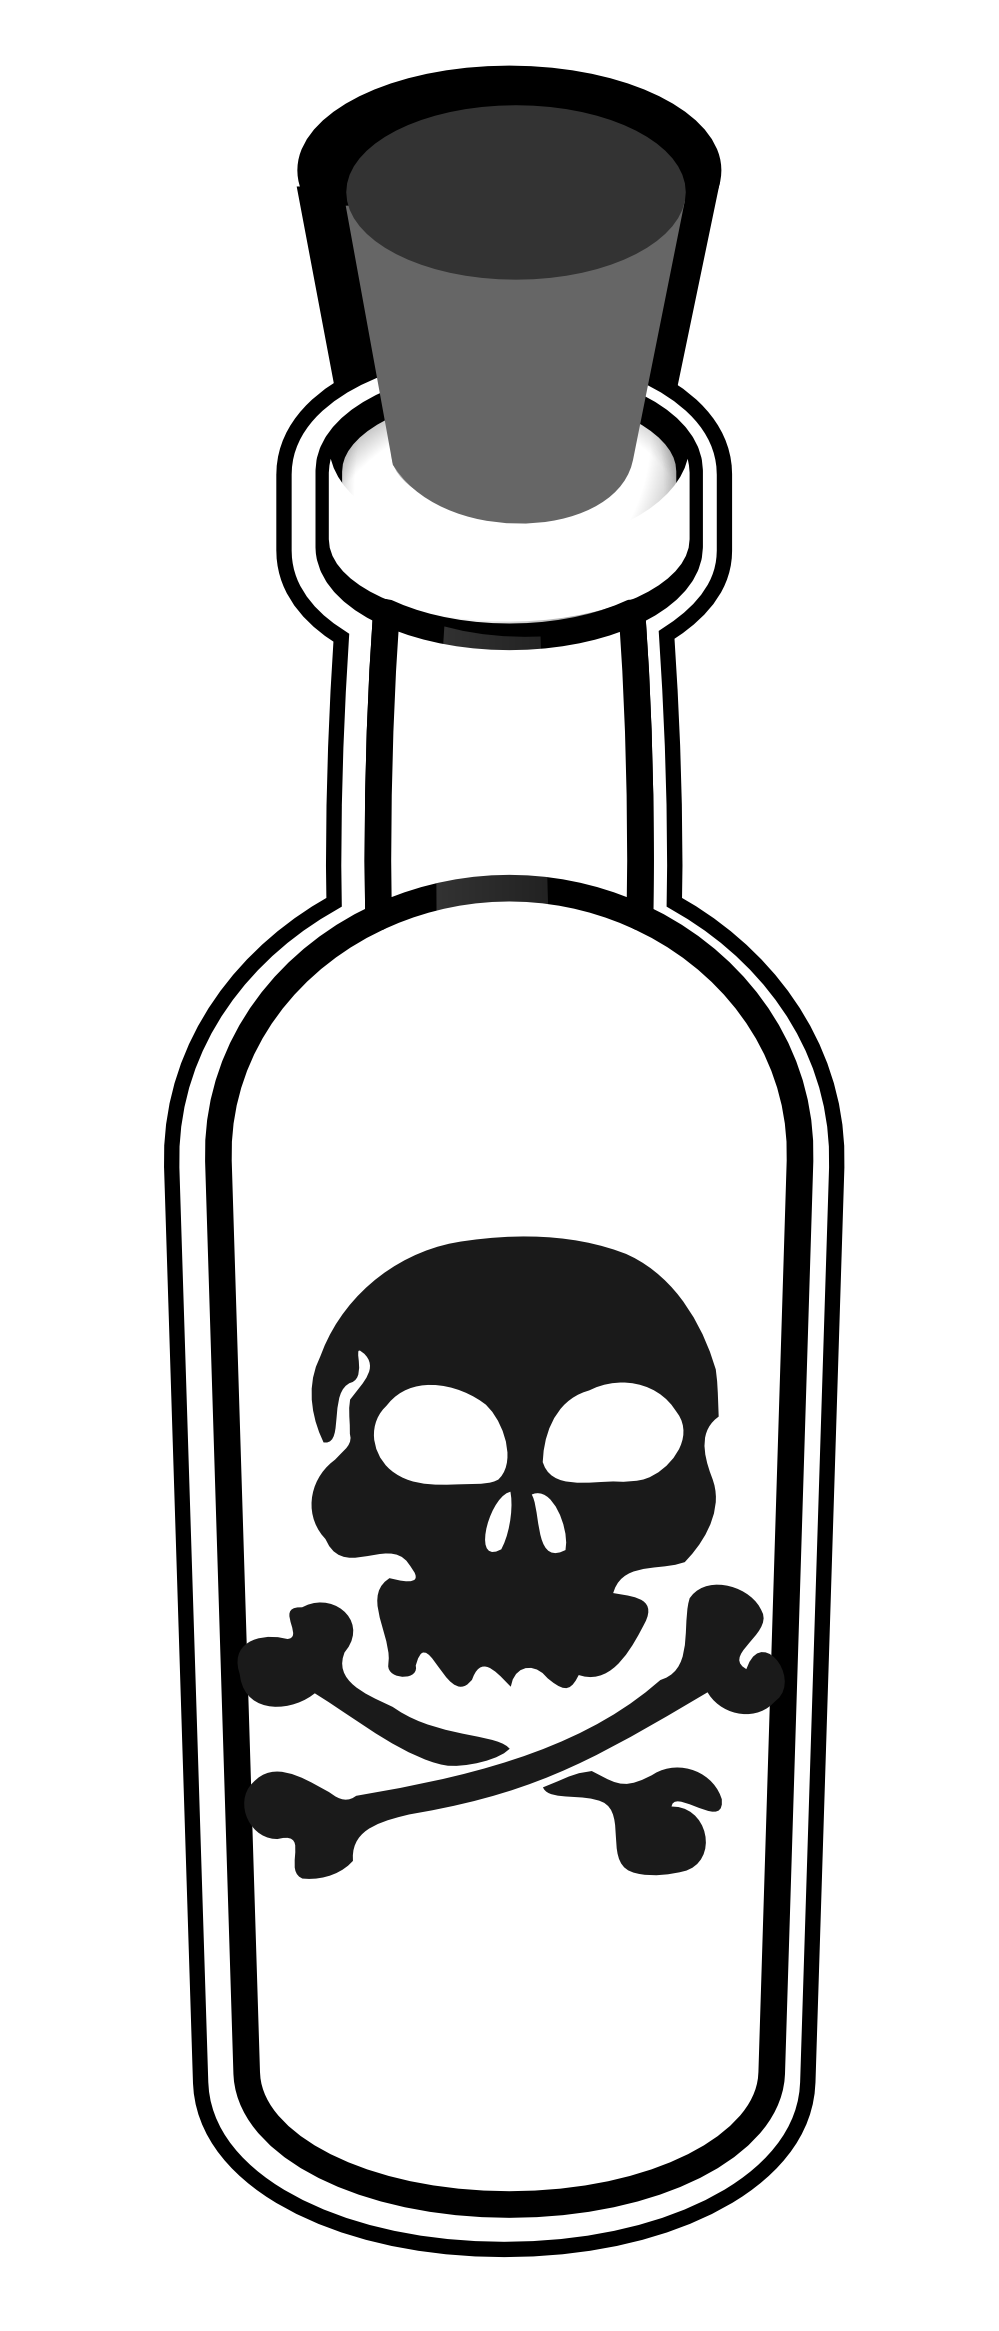 Poison control clipart image royalty free library Poison Clip Art Free | Clipart Panda - Free Clipart Images image royalty free library